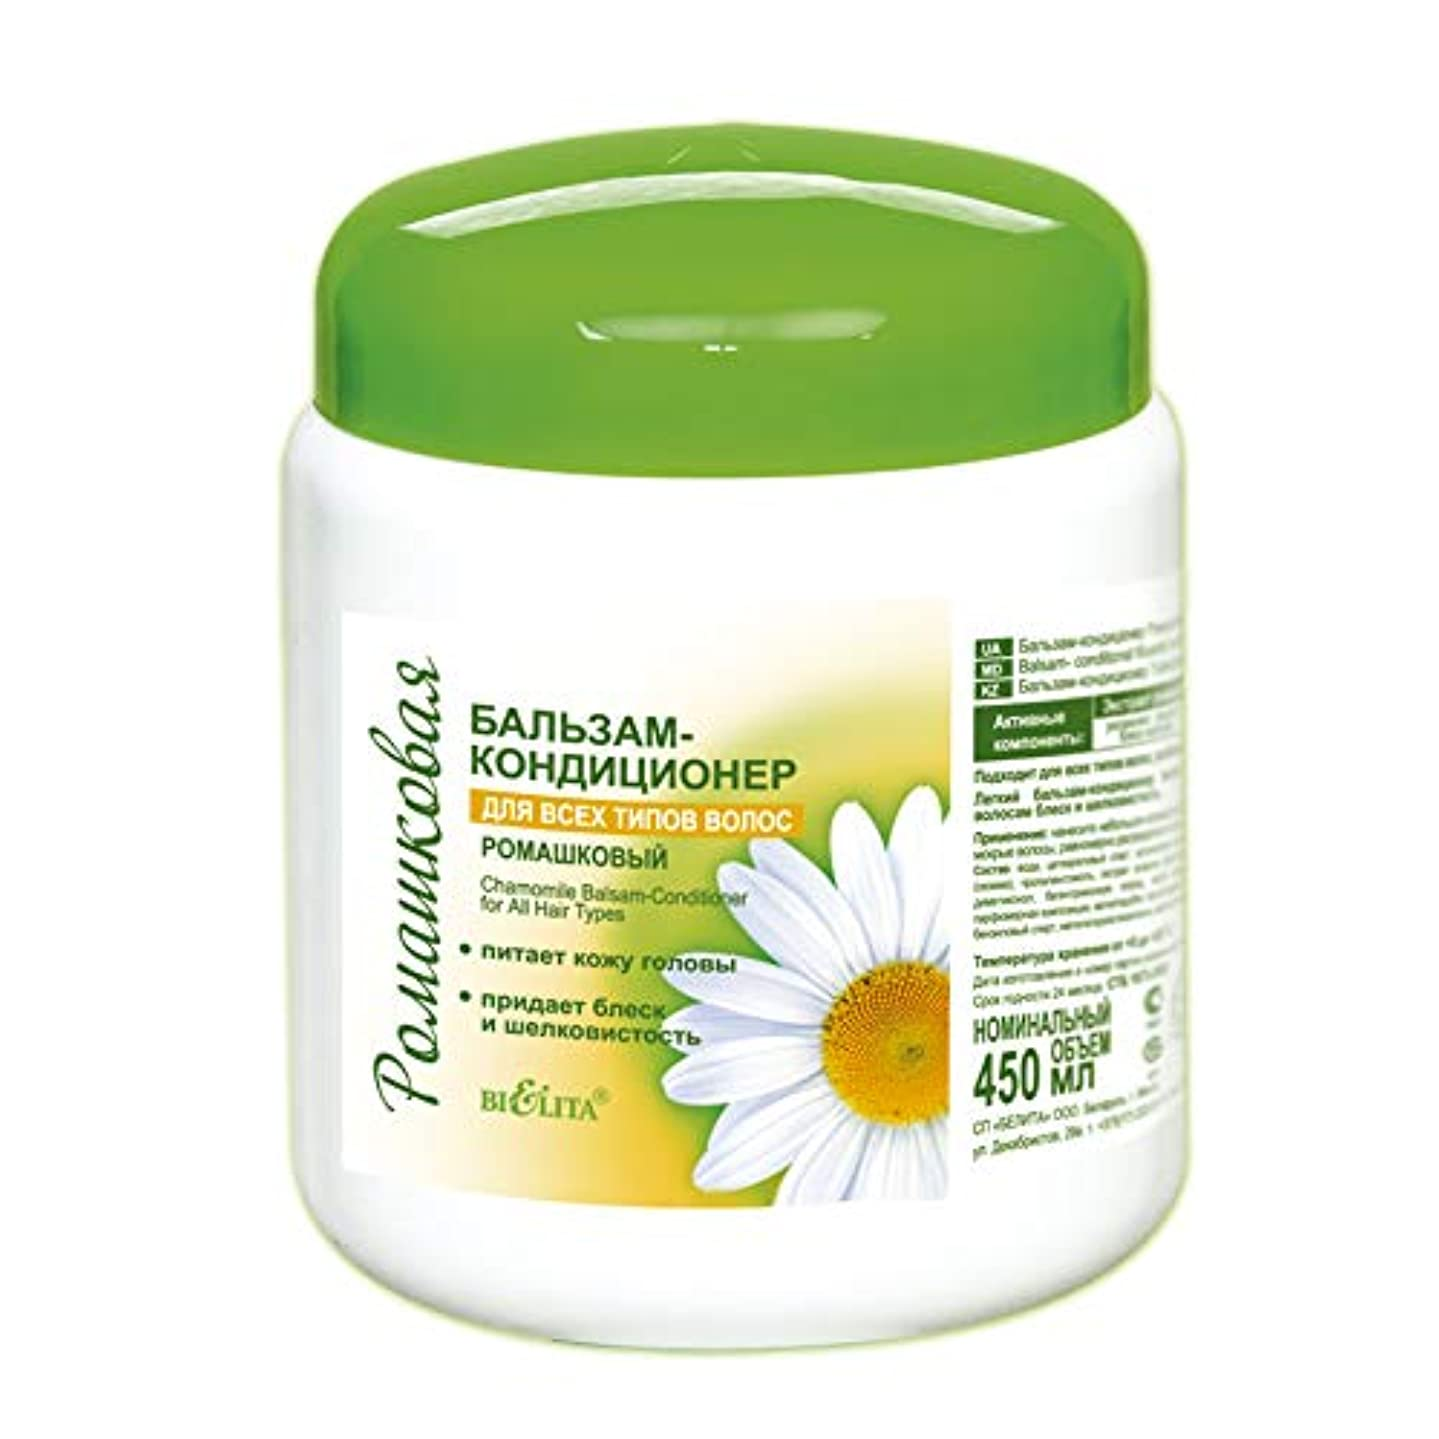 Bielita & Vitex | Chamomile Line Restorating Conditioning Balm for All Types of Hair | All Natural: Allantoin...